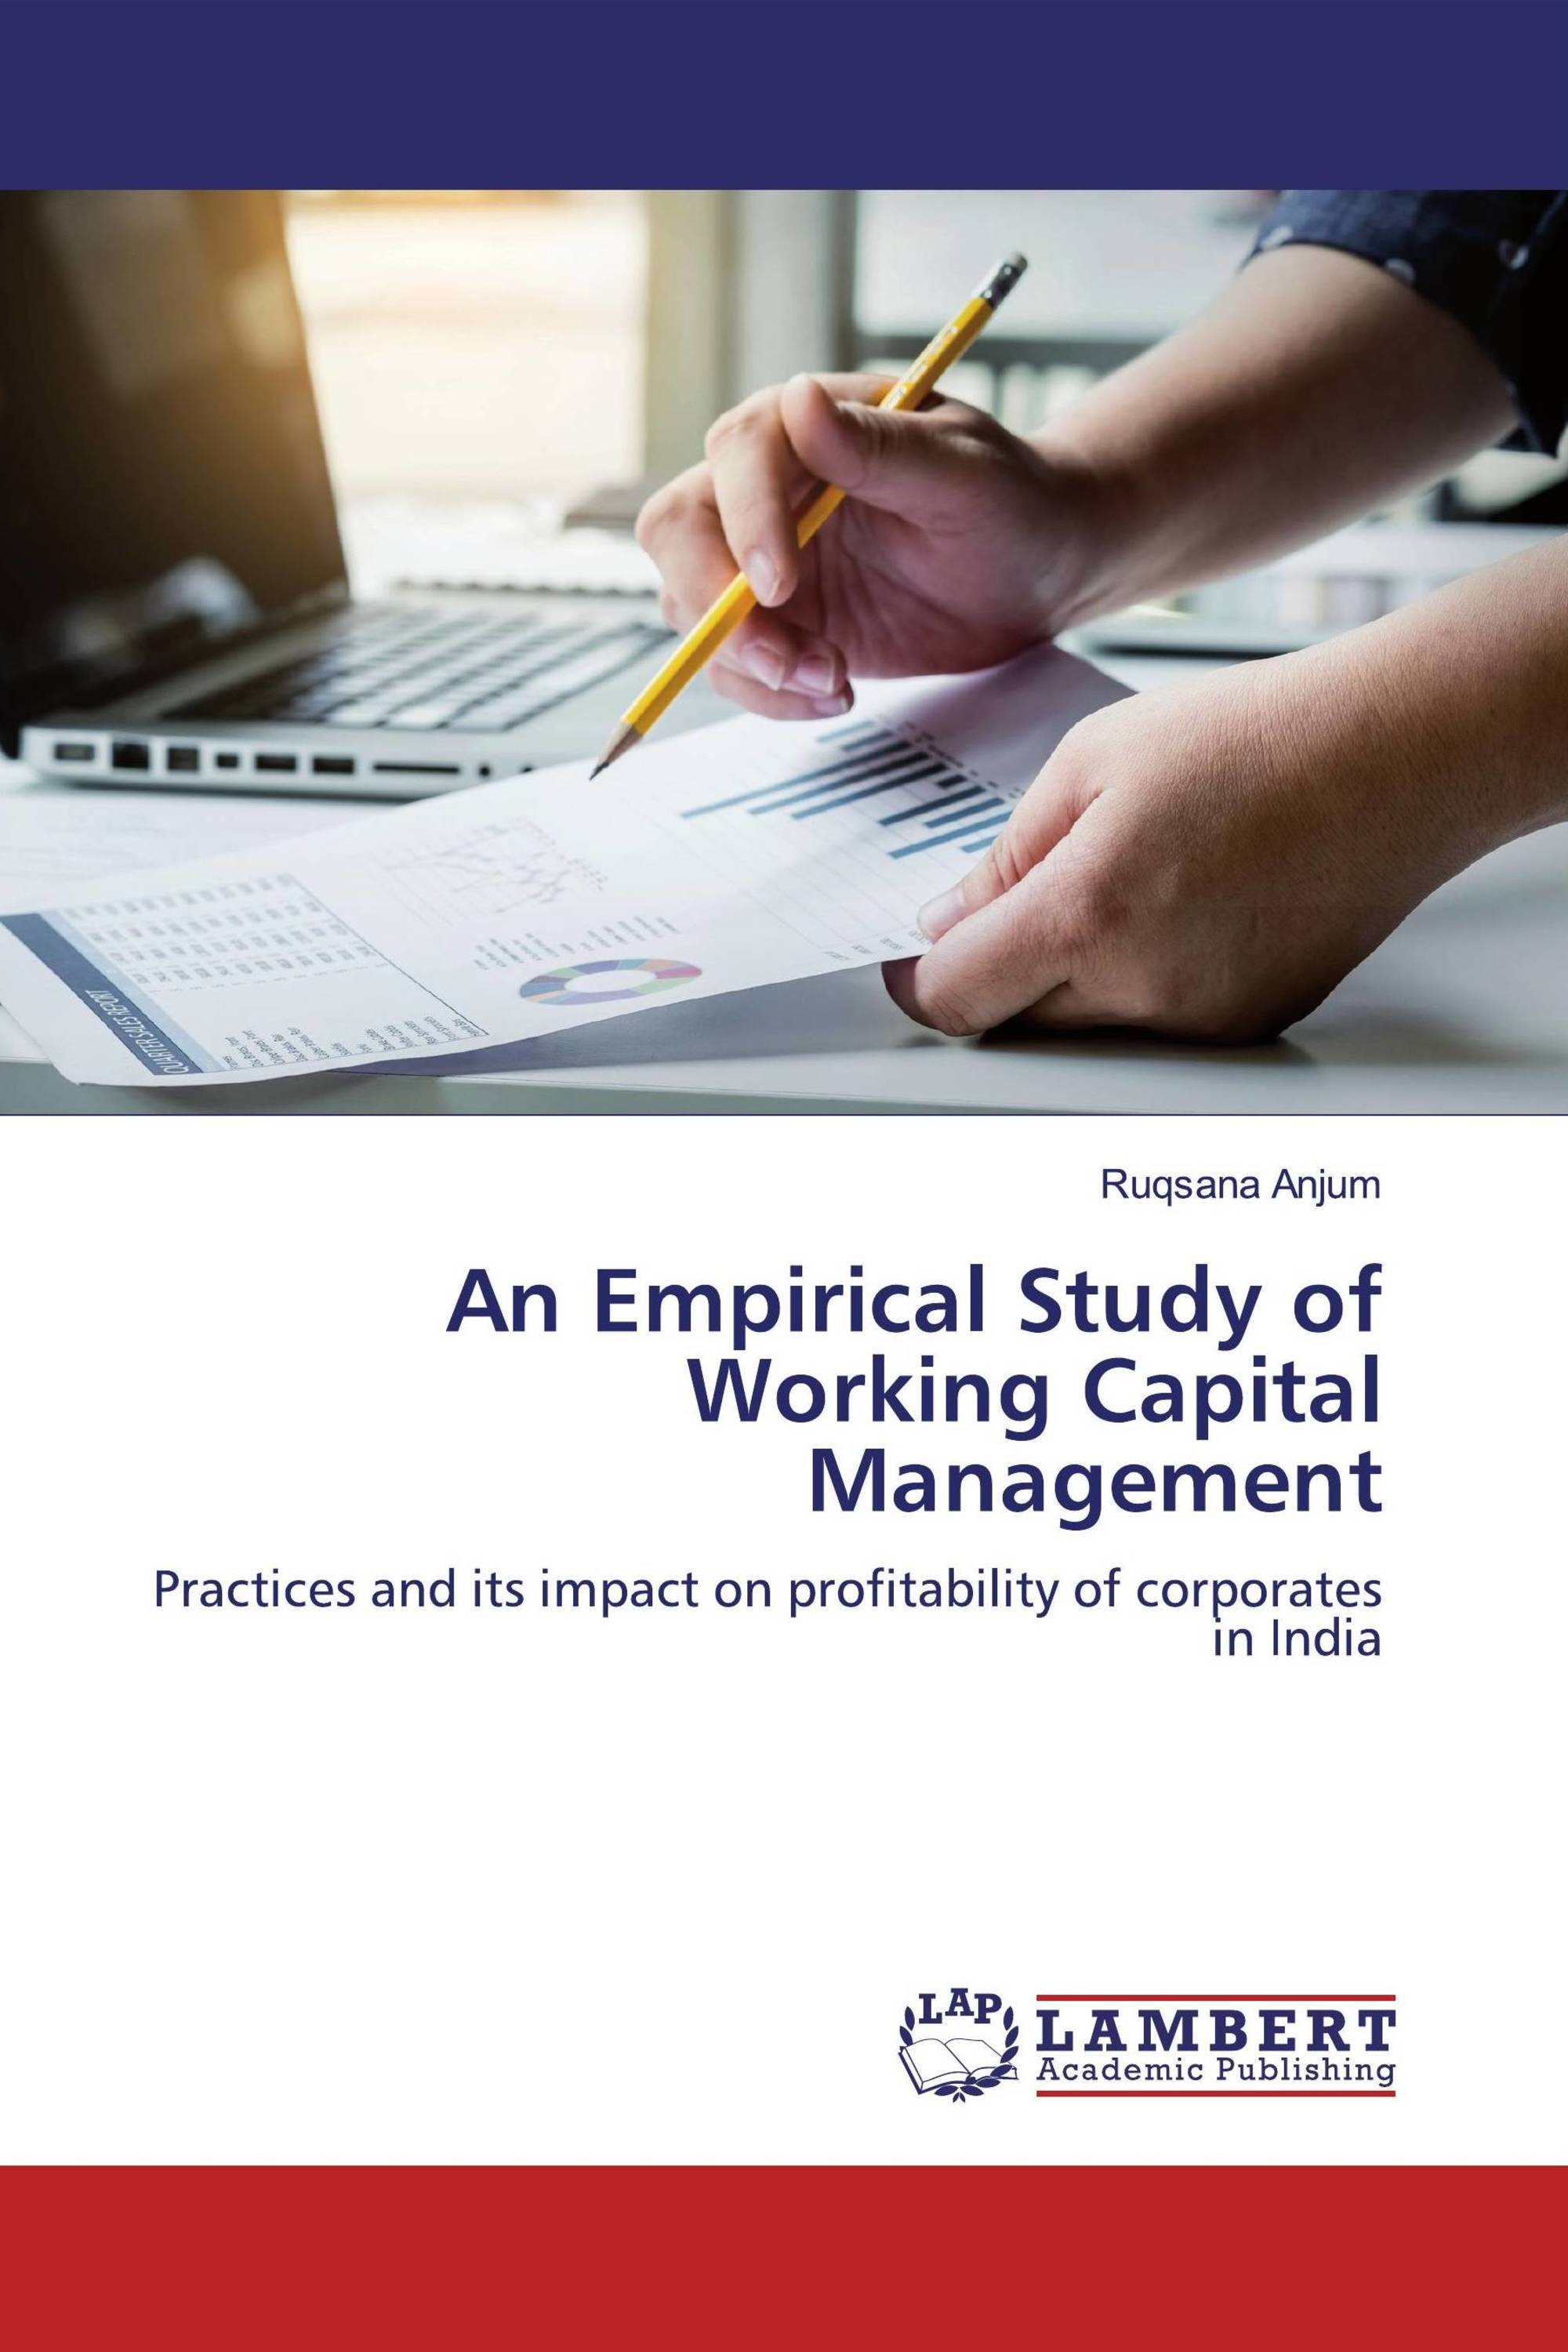 An Empirical Study of Working Capital Management